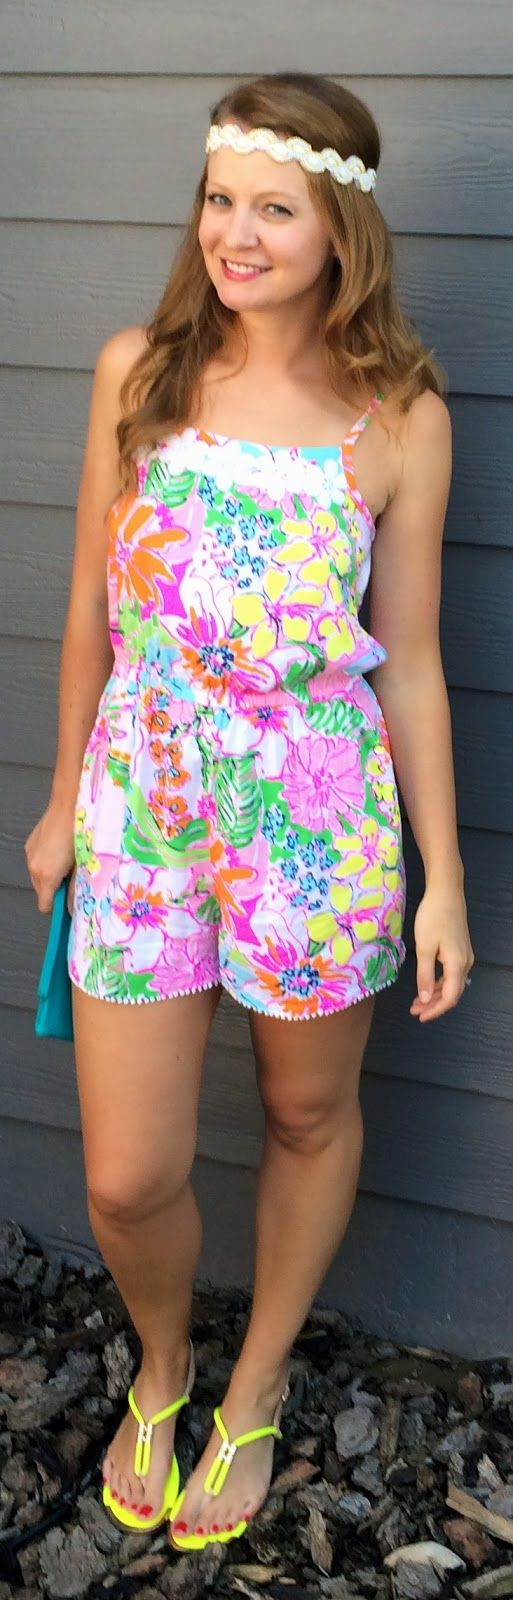 Sweet Bananie [7.21.15] printed @LillyPulitzer romper, neon sandals, bejeweled headband + turquoise clutch